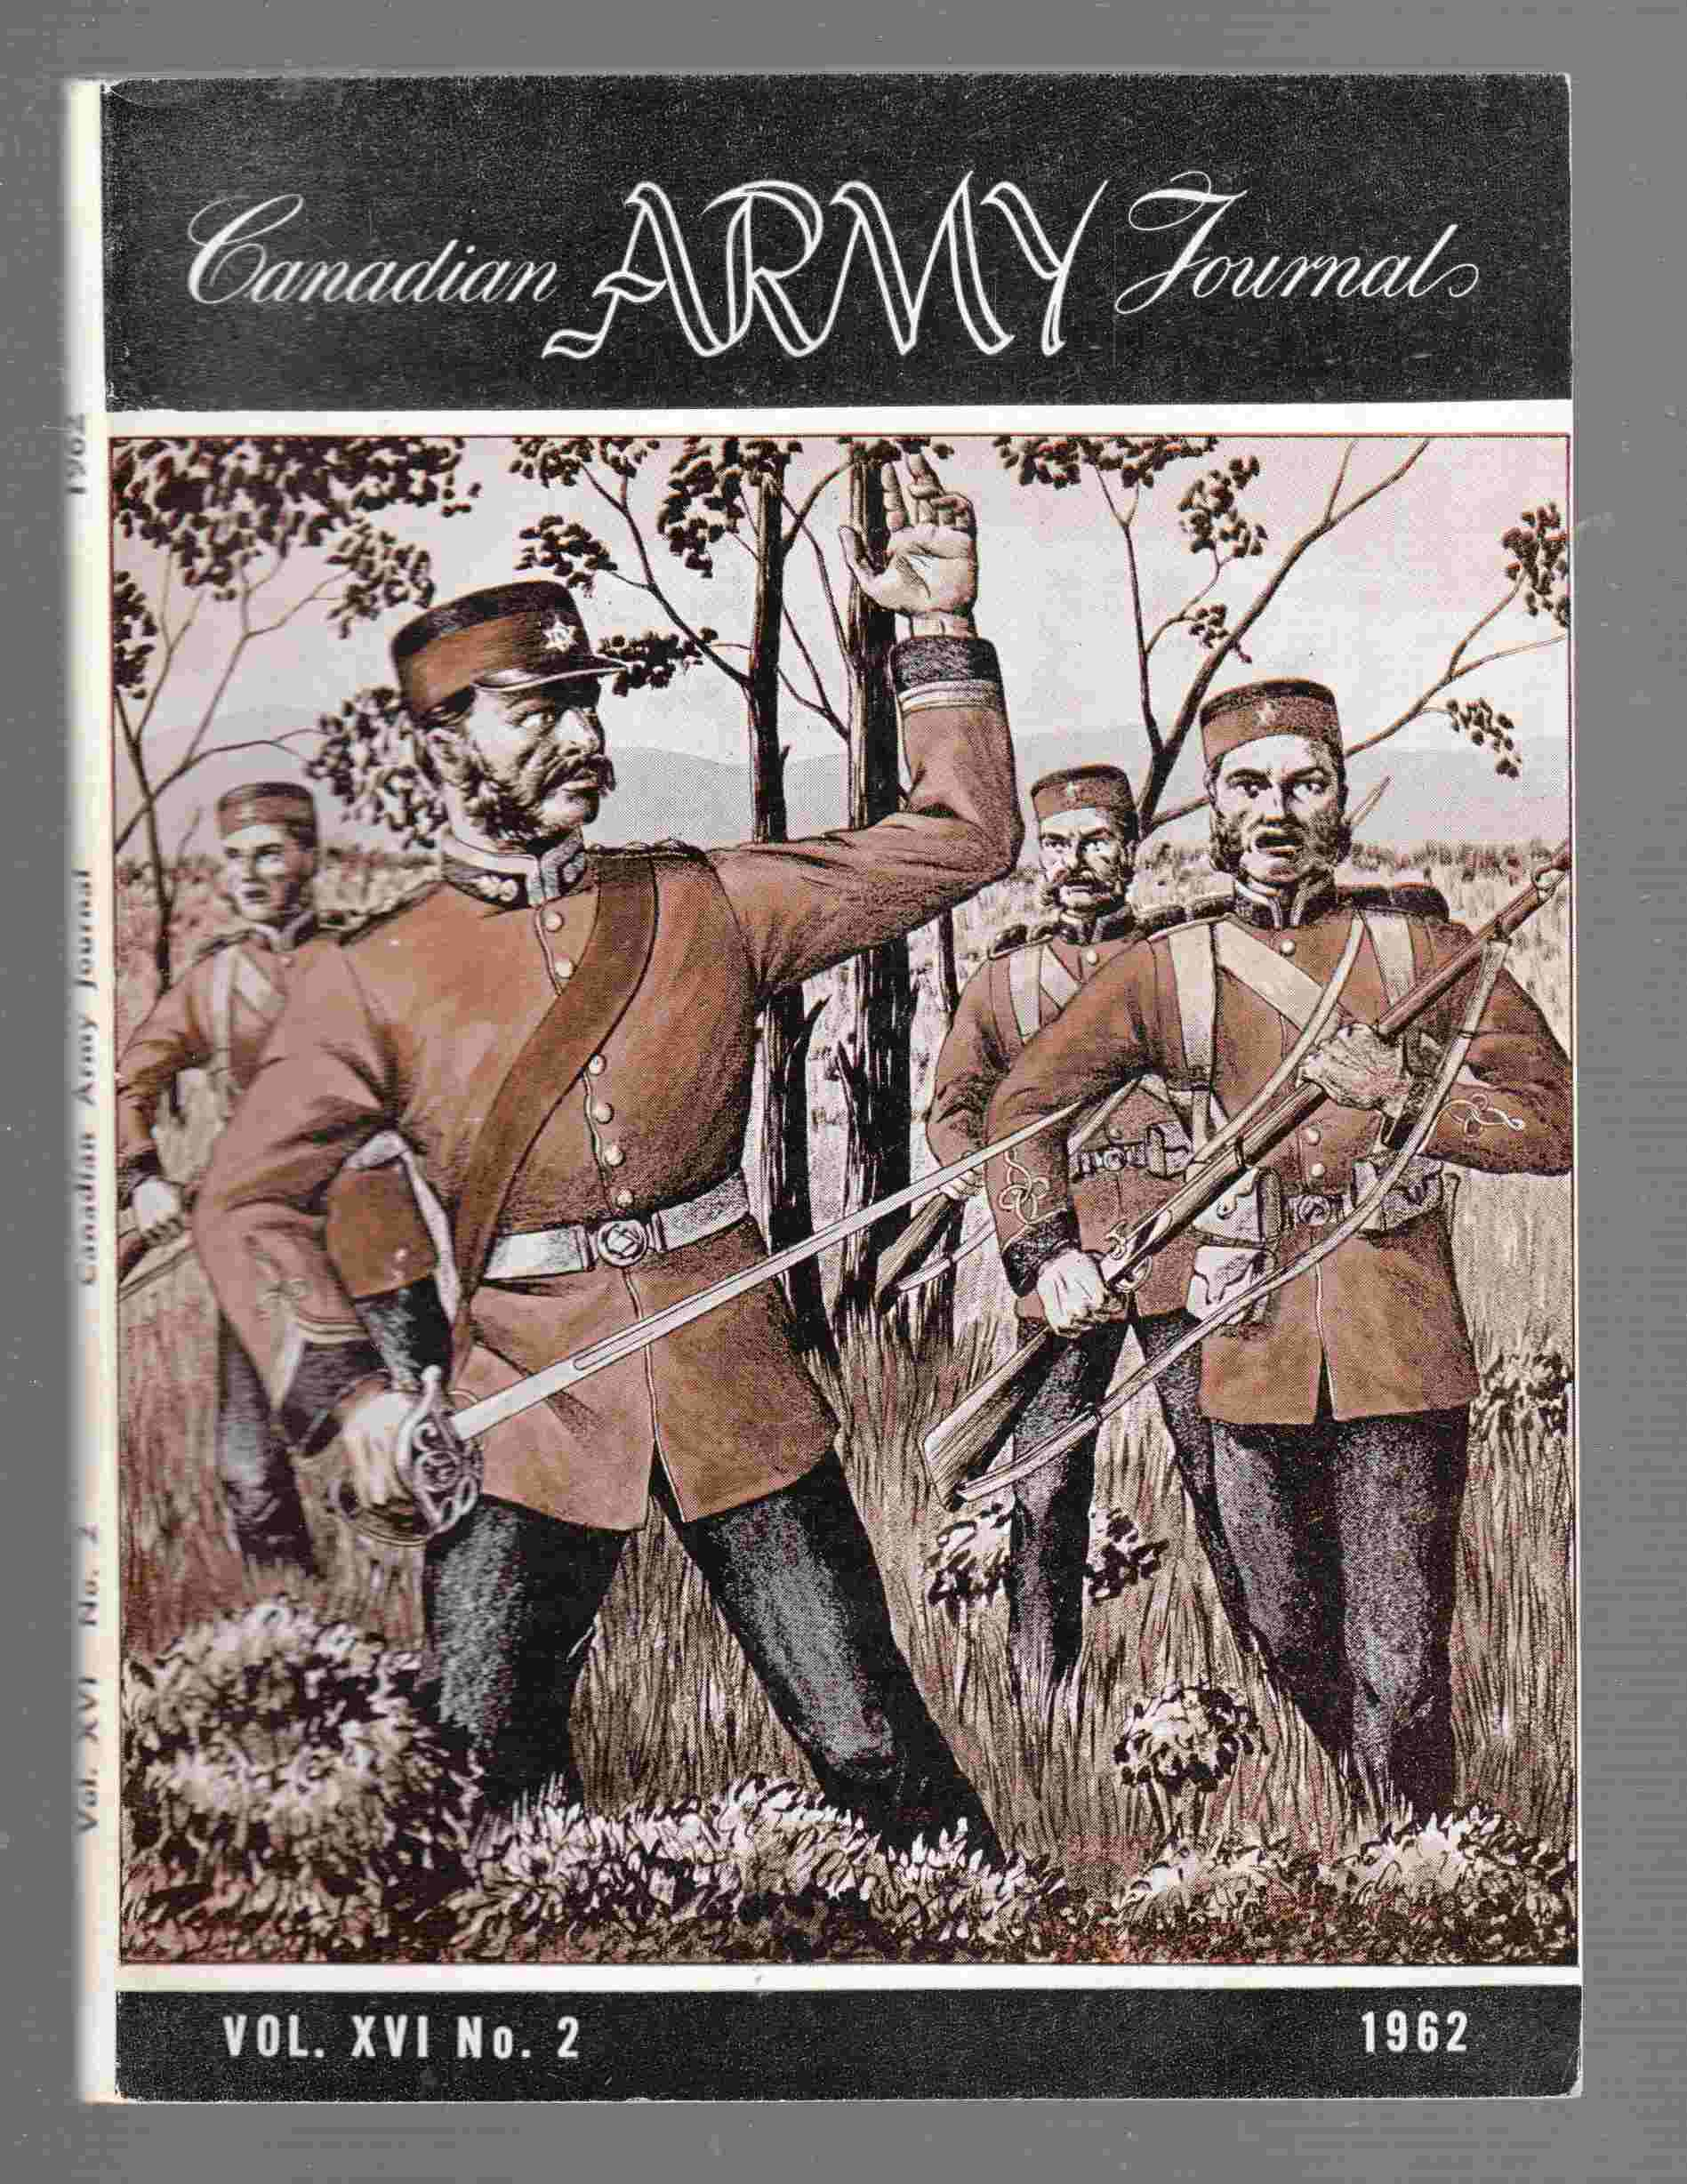 Image for The Canadian Army Journal Vol. XVI No. 2 1962